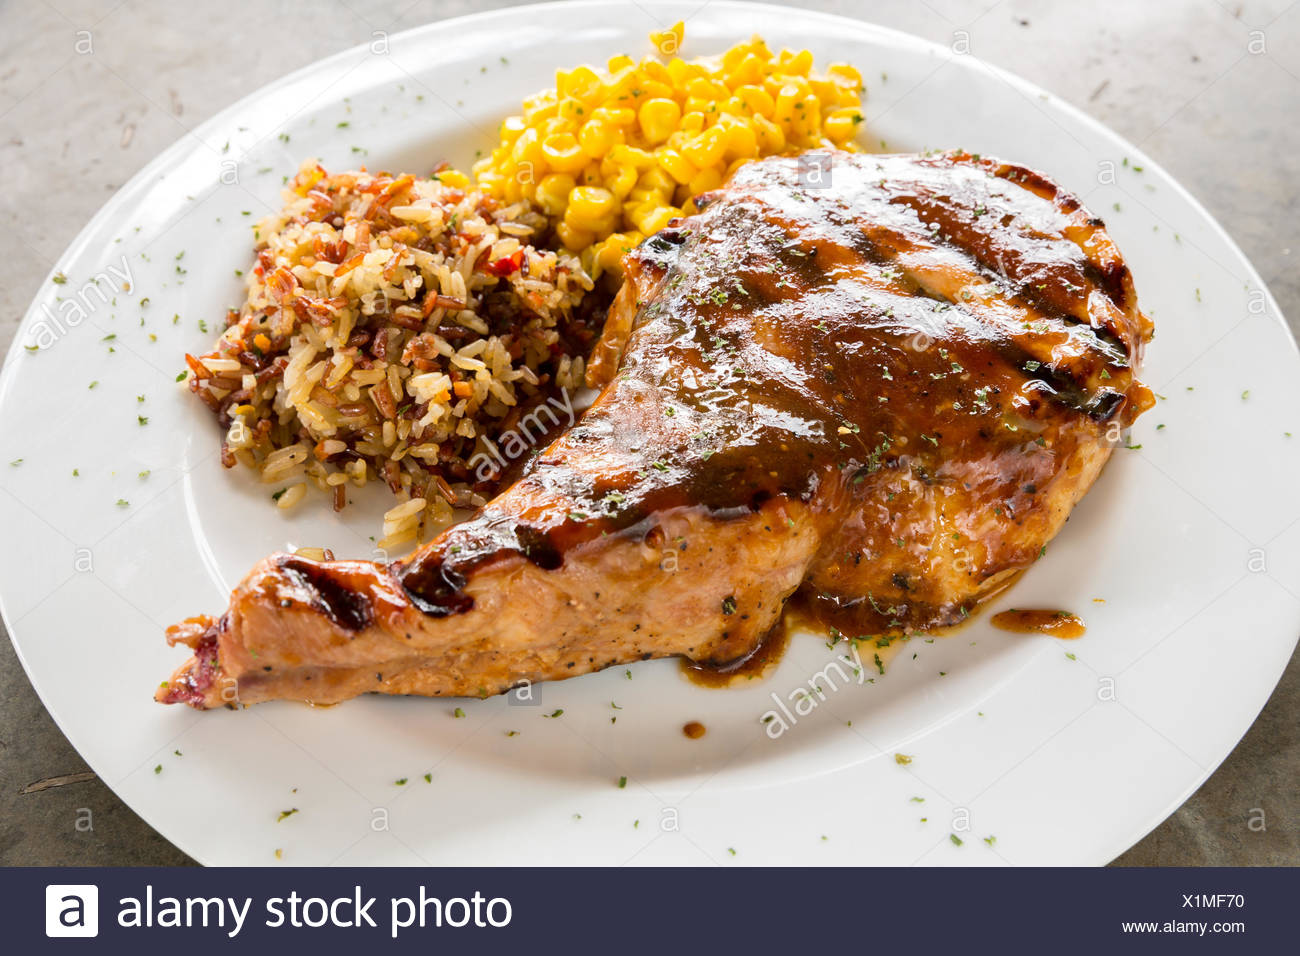 Gourmet Main Entree Course grilled pork chop Stock Photo